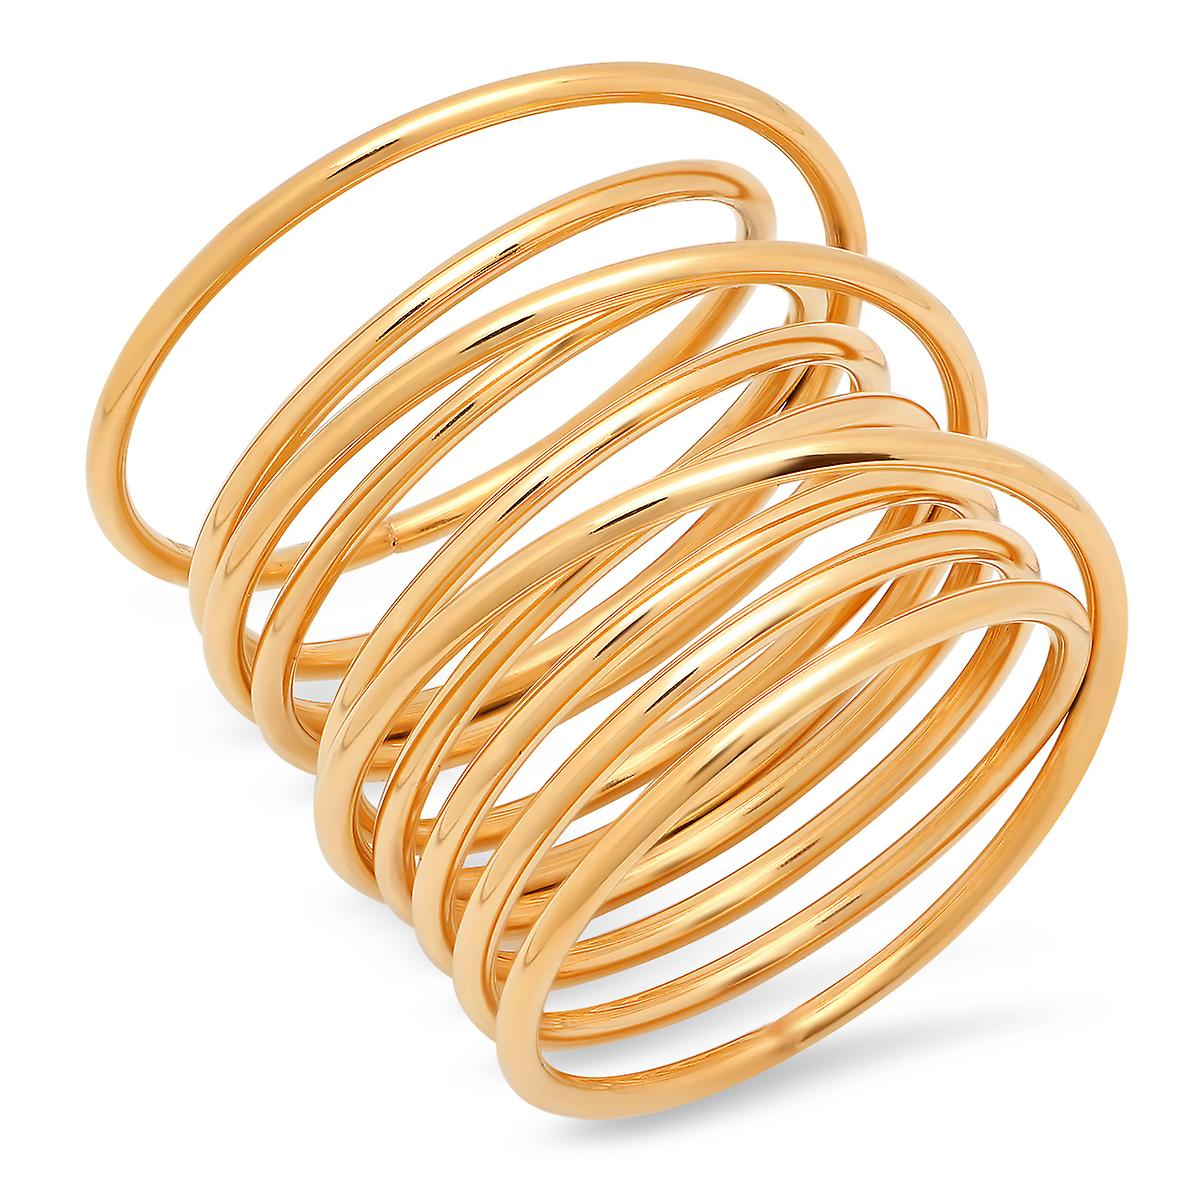 Ladies 18K Gold Plated Stainless Steel Swirl Wrap Ring